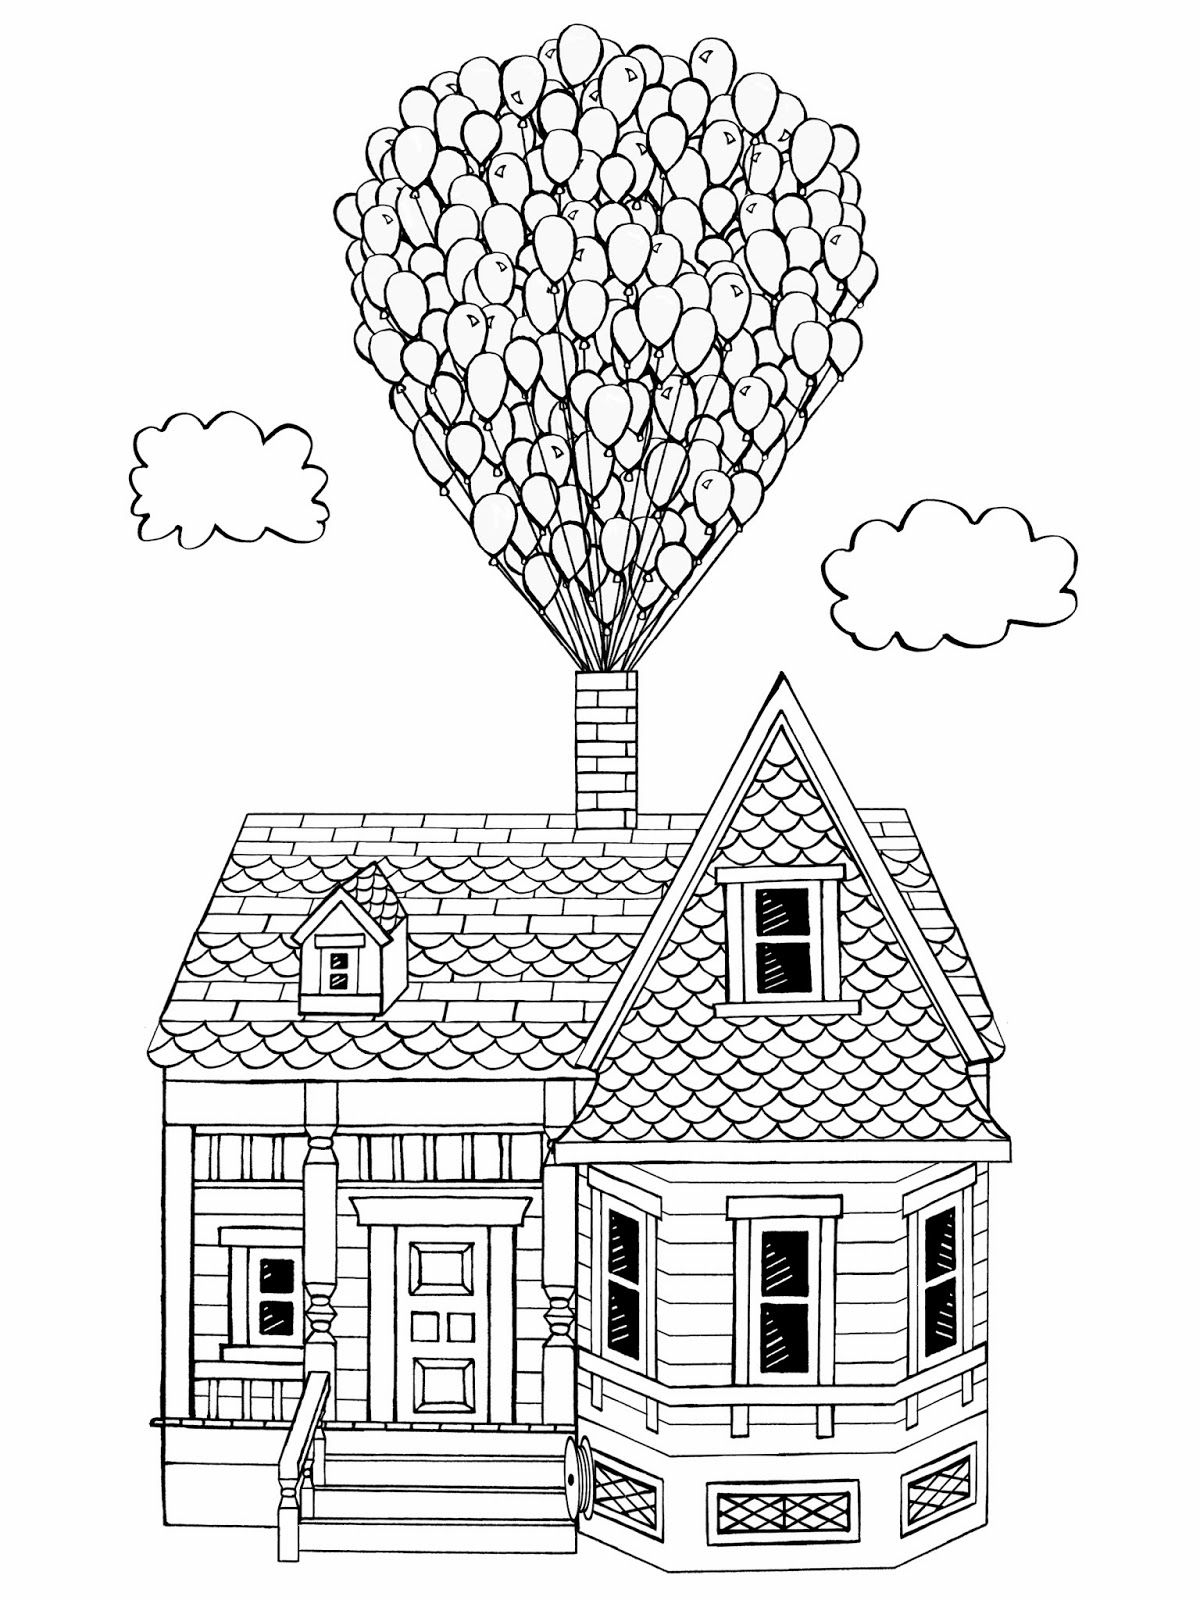 9 Images Of Up House Coloring Page Up Movie Coloring Peach